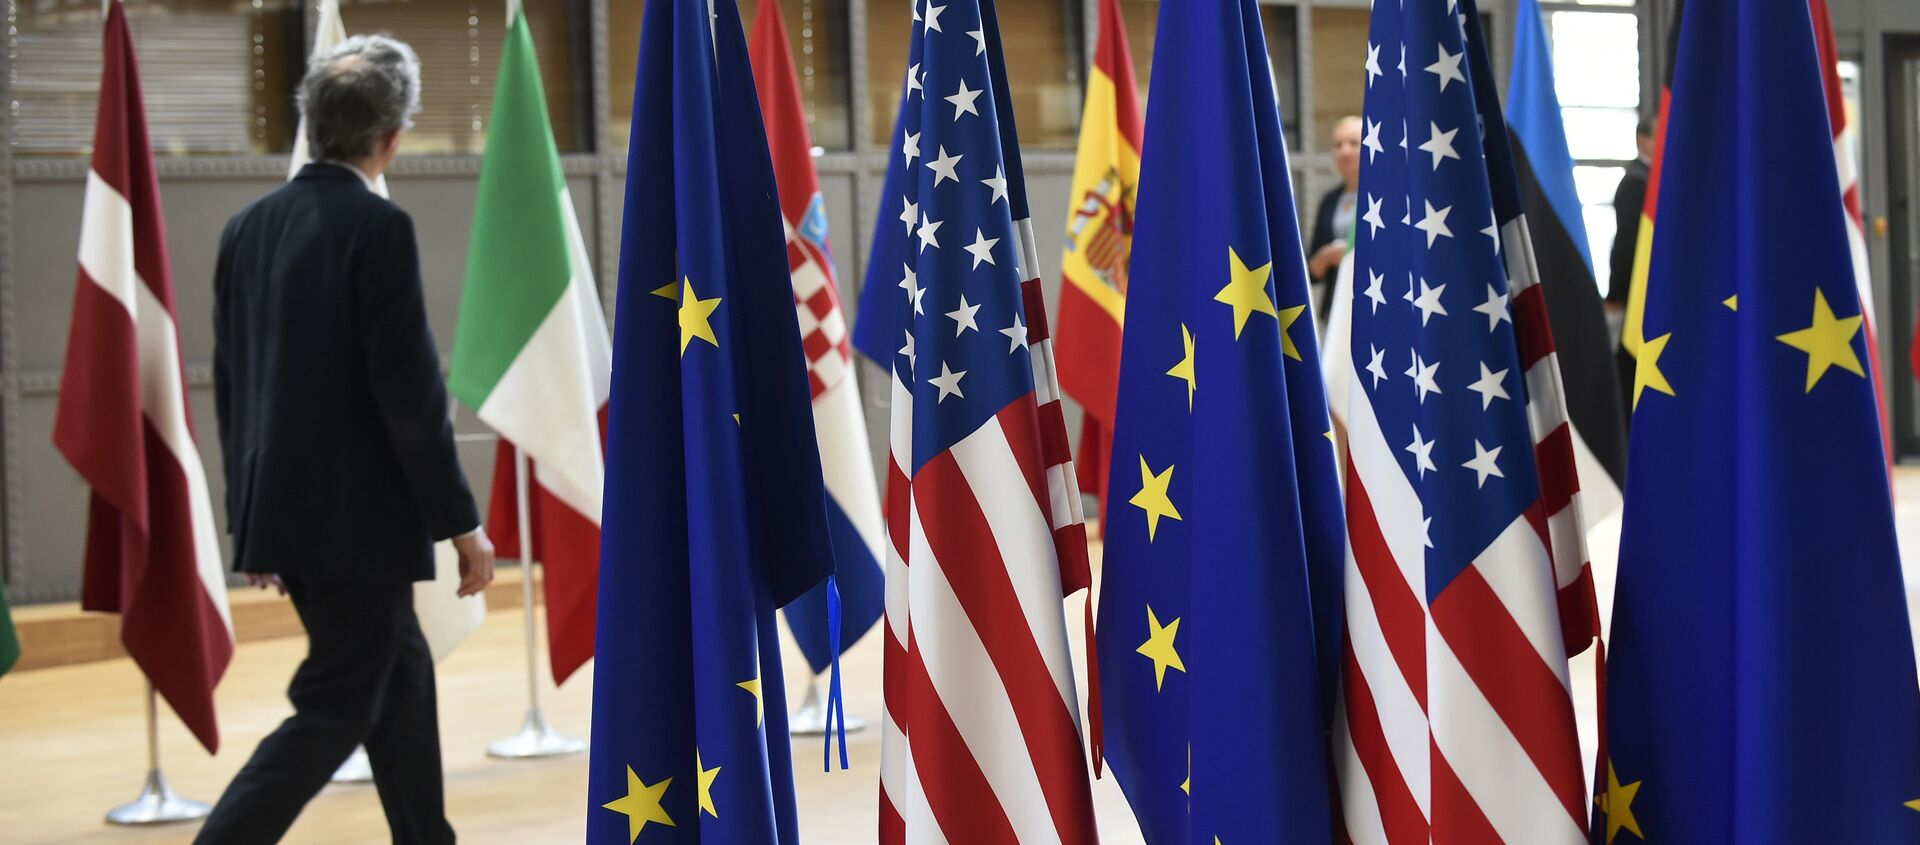 A man walks near US and European Union flags at the EU headquarters on May 15, 2017 in Brussels - Sputnik International, 1920, 17.06.2019